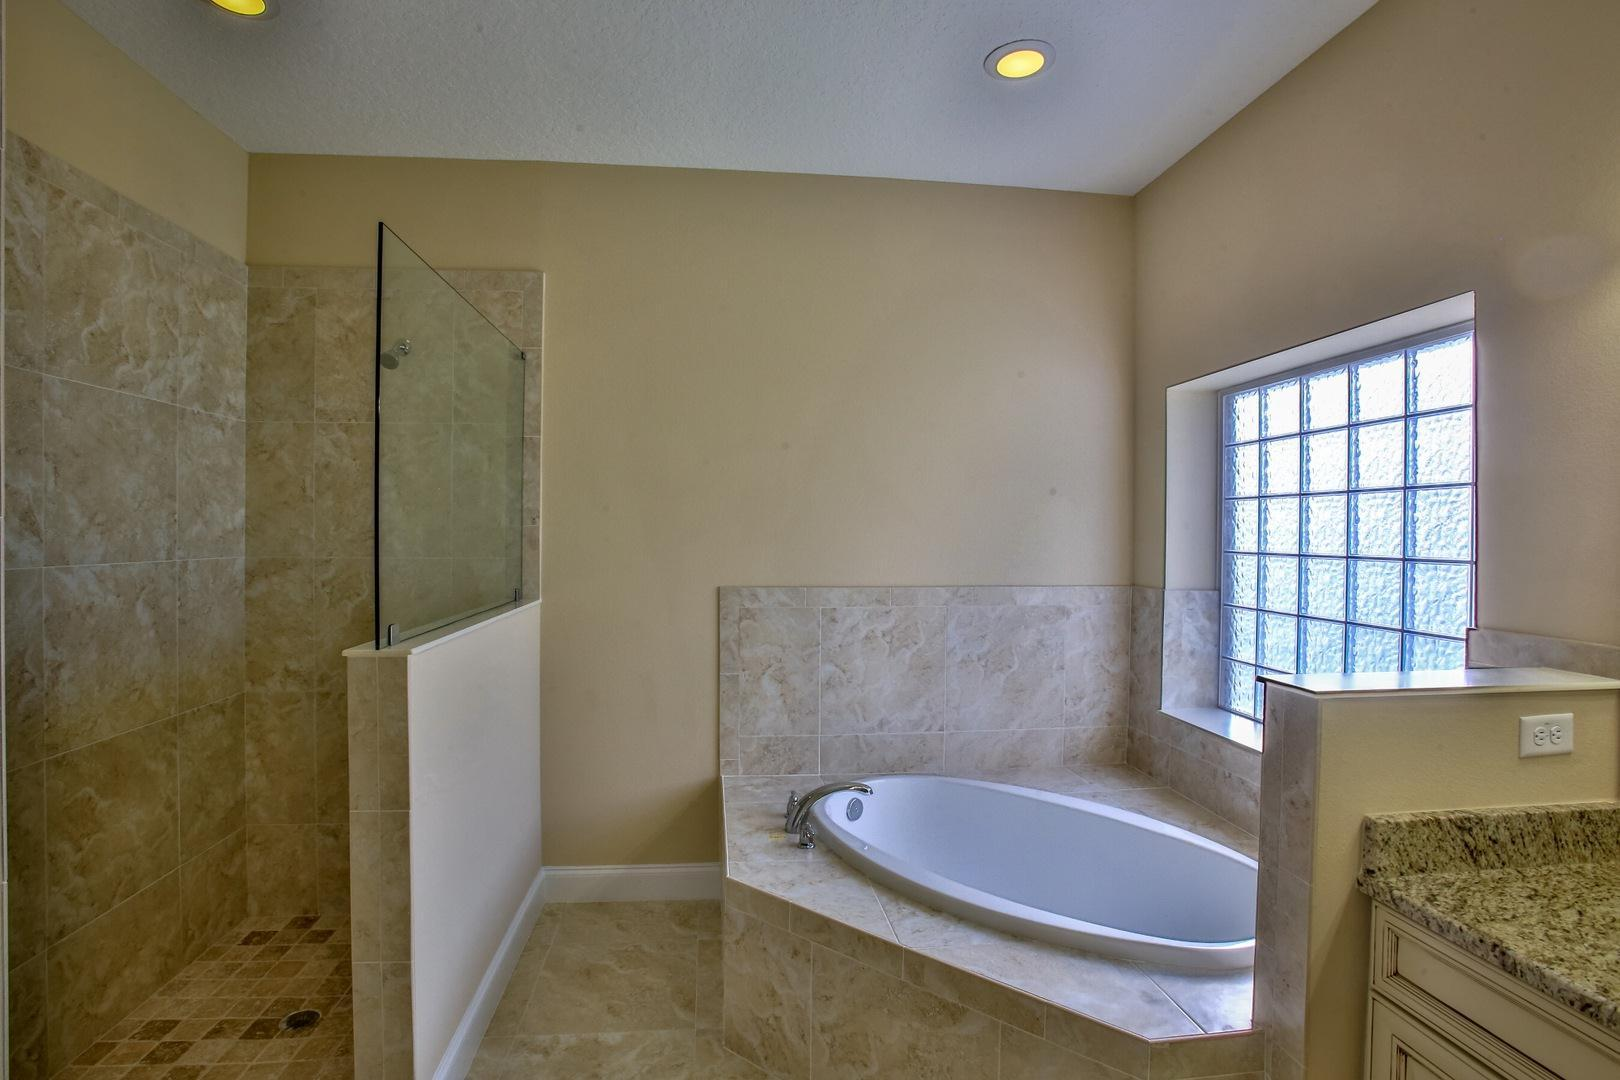 Bathroom featured in The Palencia By Vanacore Homes in Daytona Beach, FL